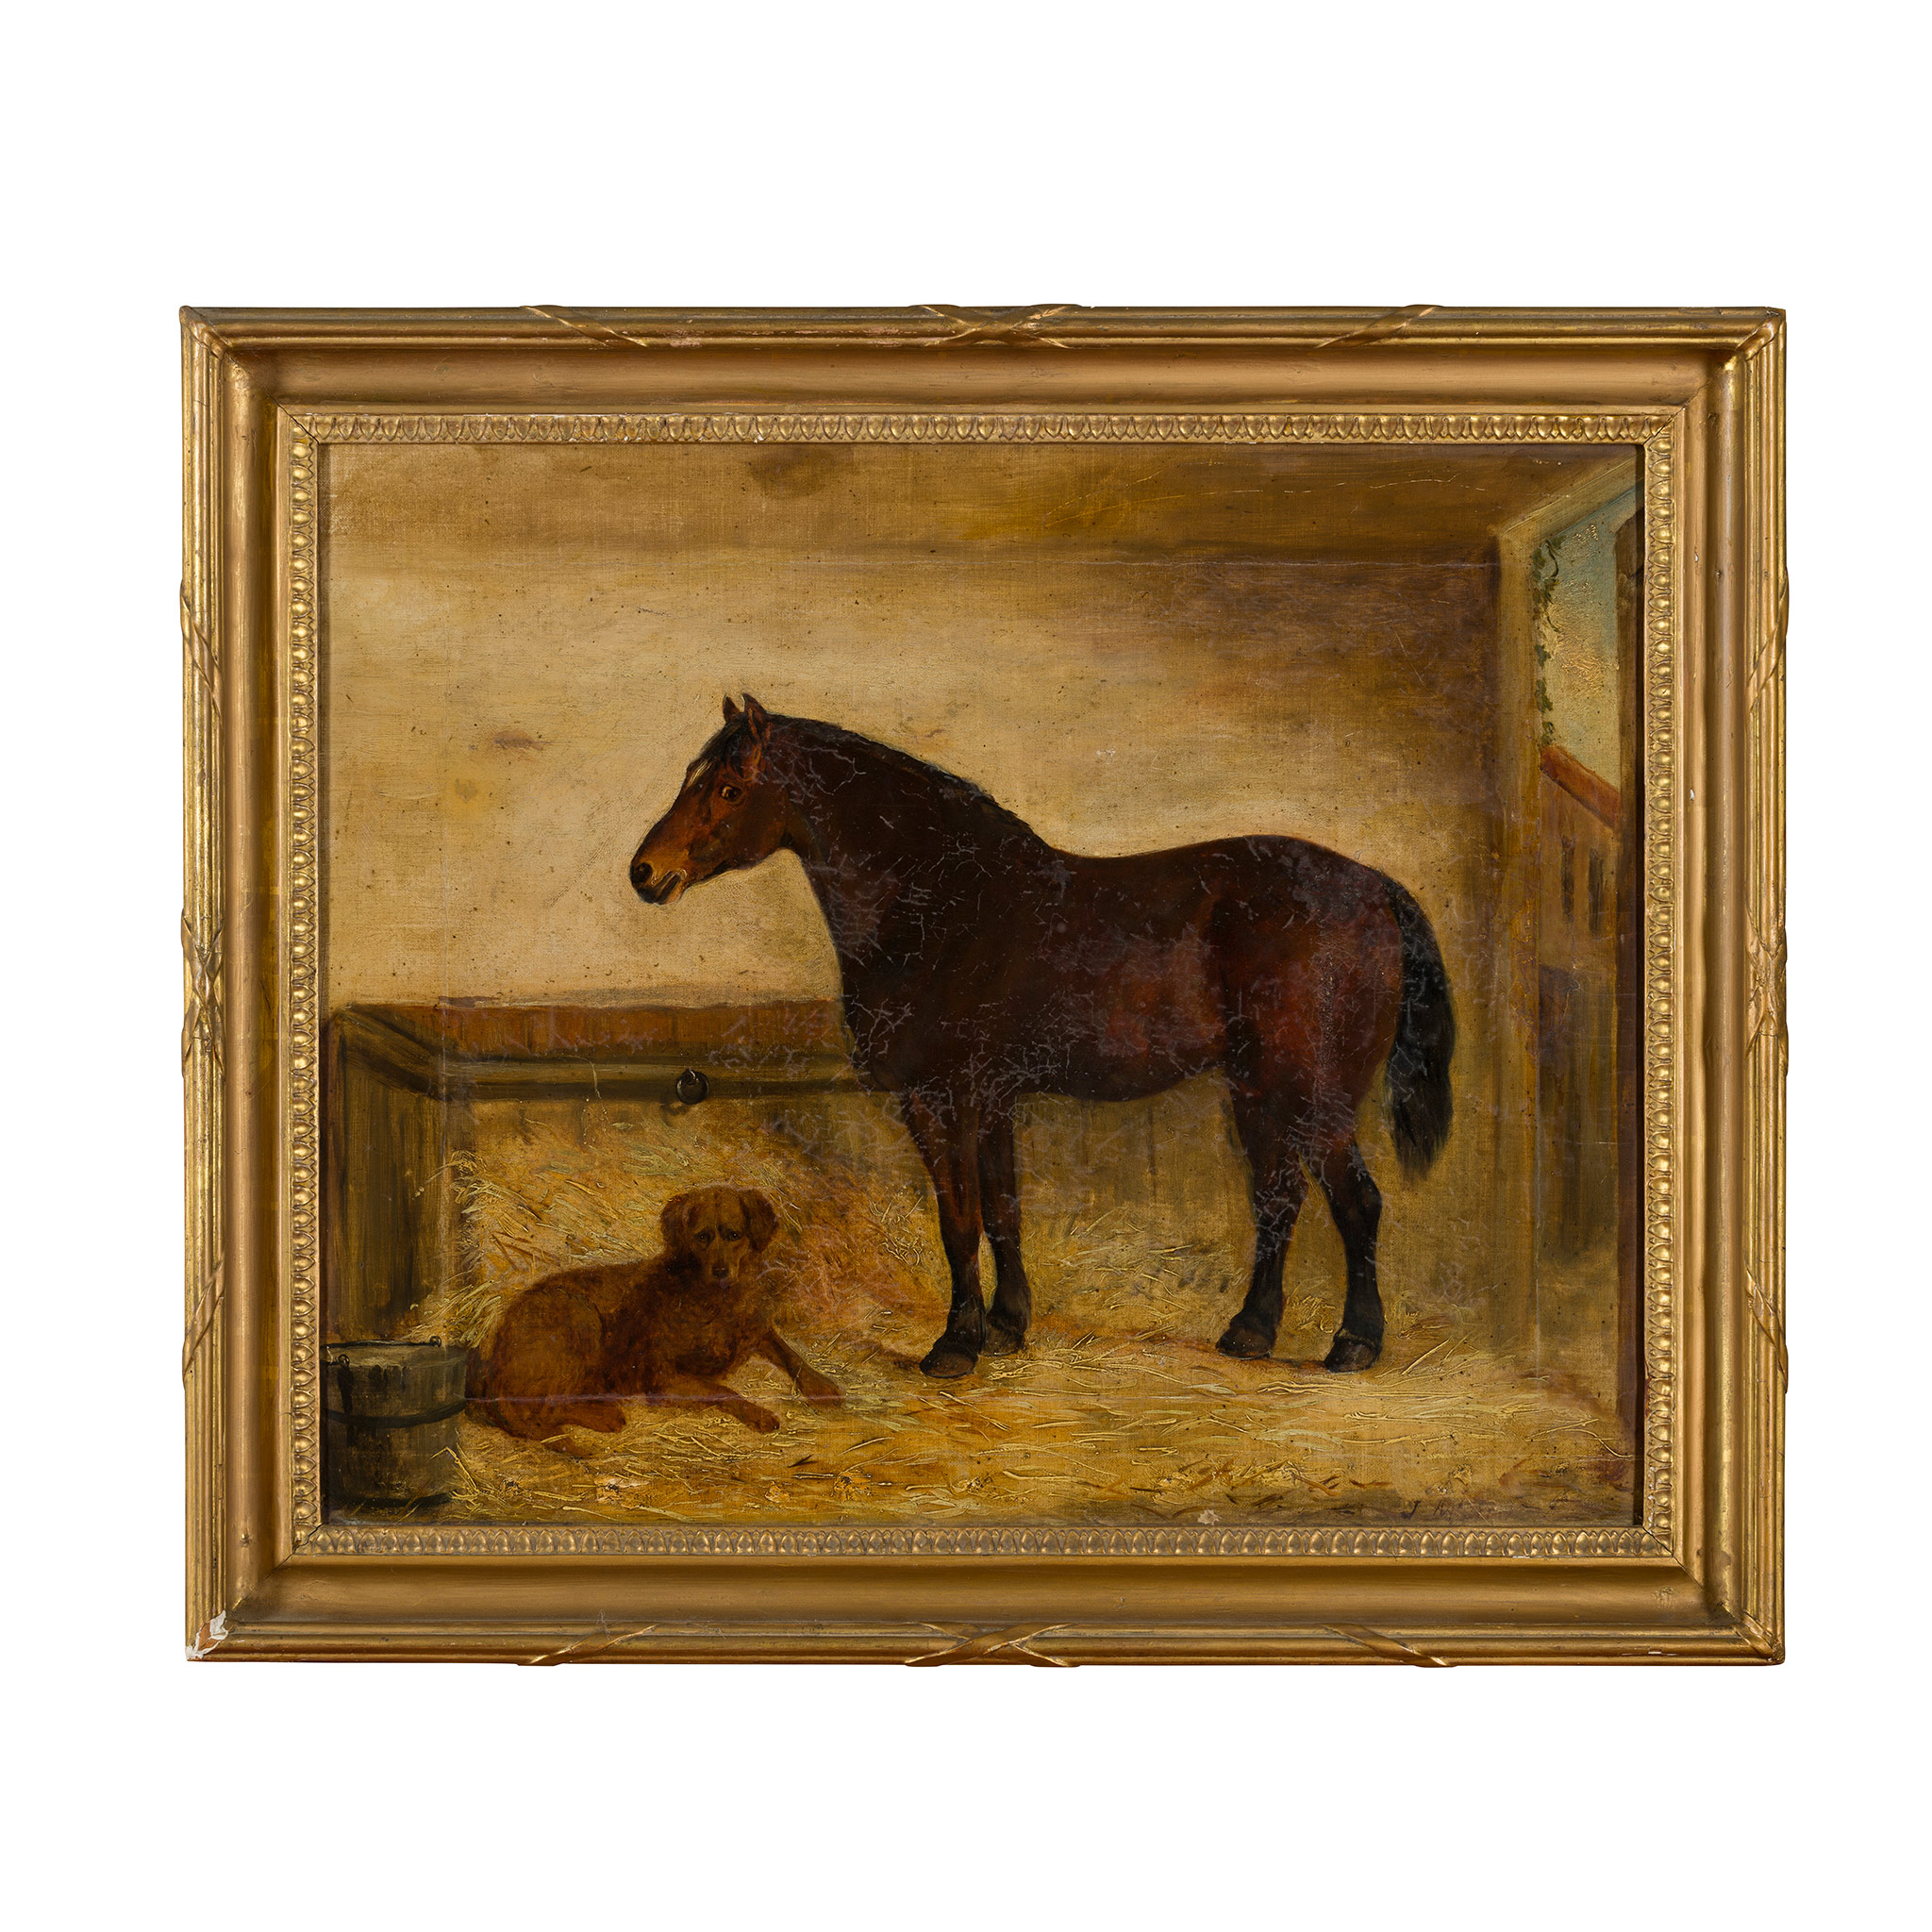 19TH CENTURY ENGLISH SCHOOL DARK BAY COB WITH A RETREIVER IN A STABLE - Image 2 of 2